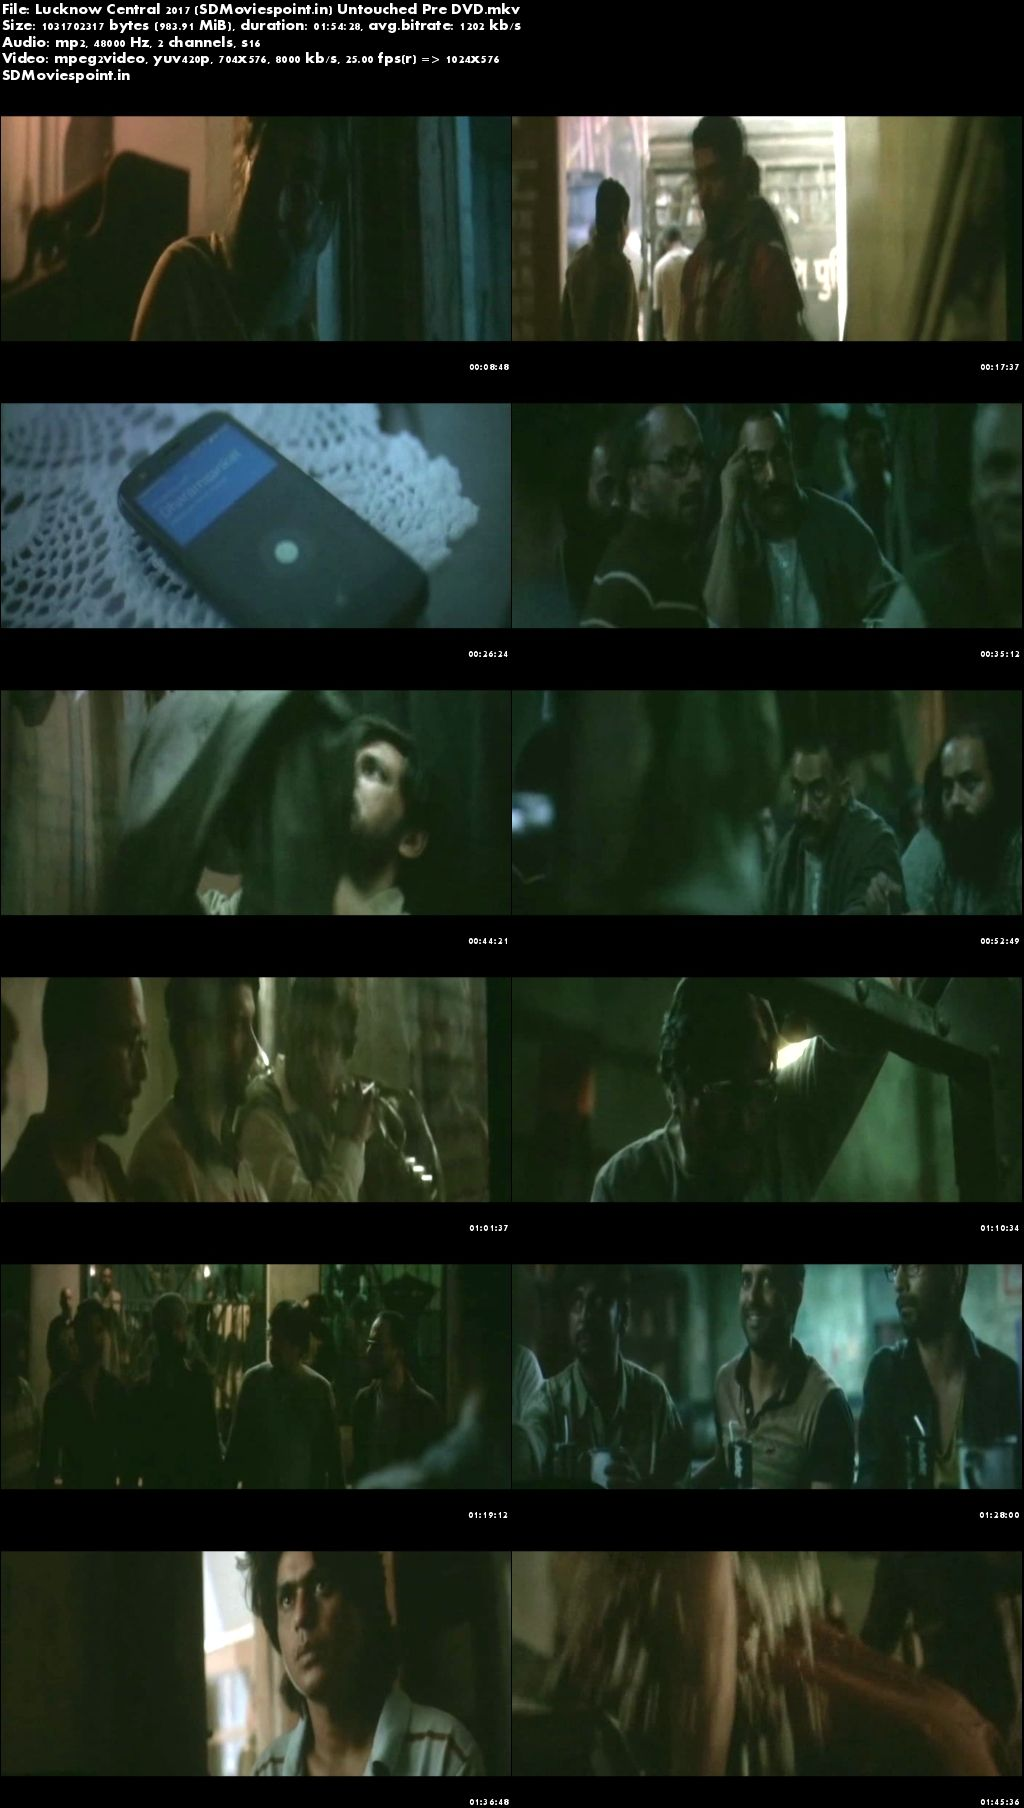 Screen Shots Lucknow Central (2017) Full Hindi Movie Download Pre DvD